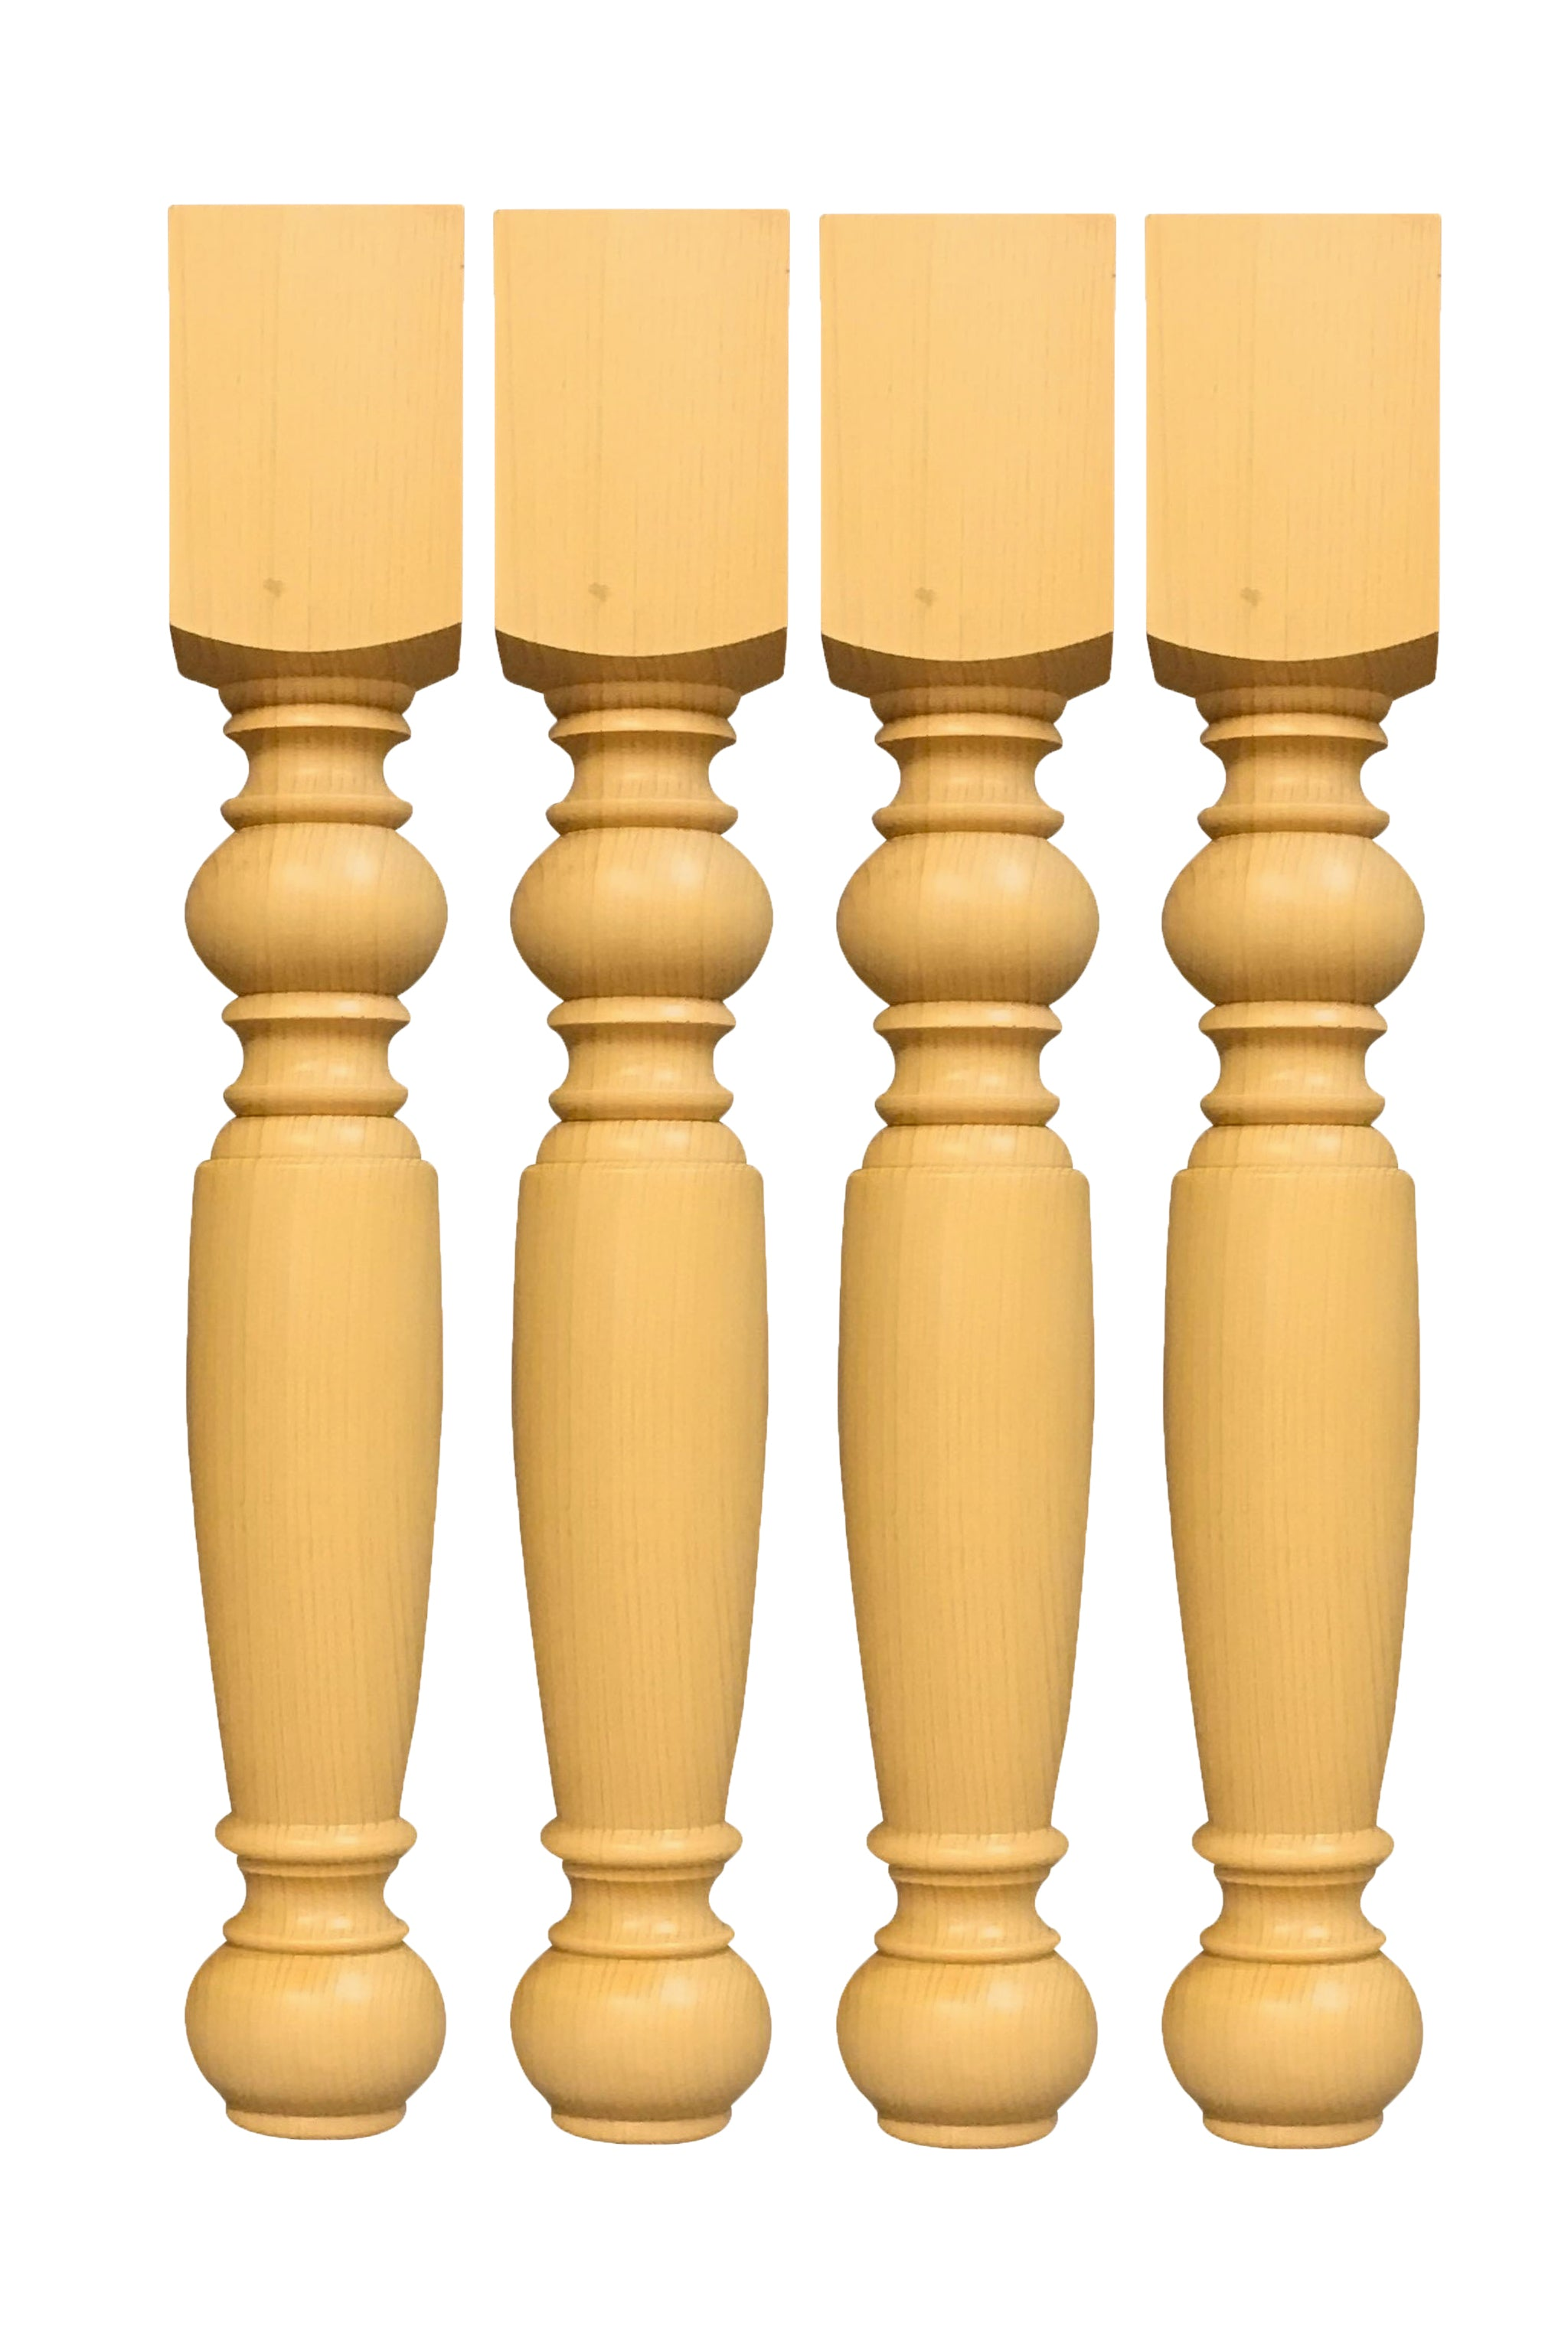 29 Unfinished Solid Knotty Pine Dining Table Legs Style Tl 1243 Tablelegssite Com